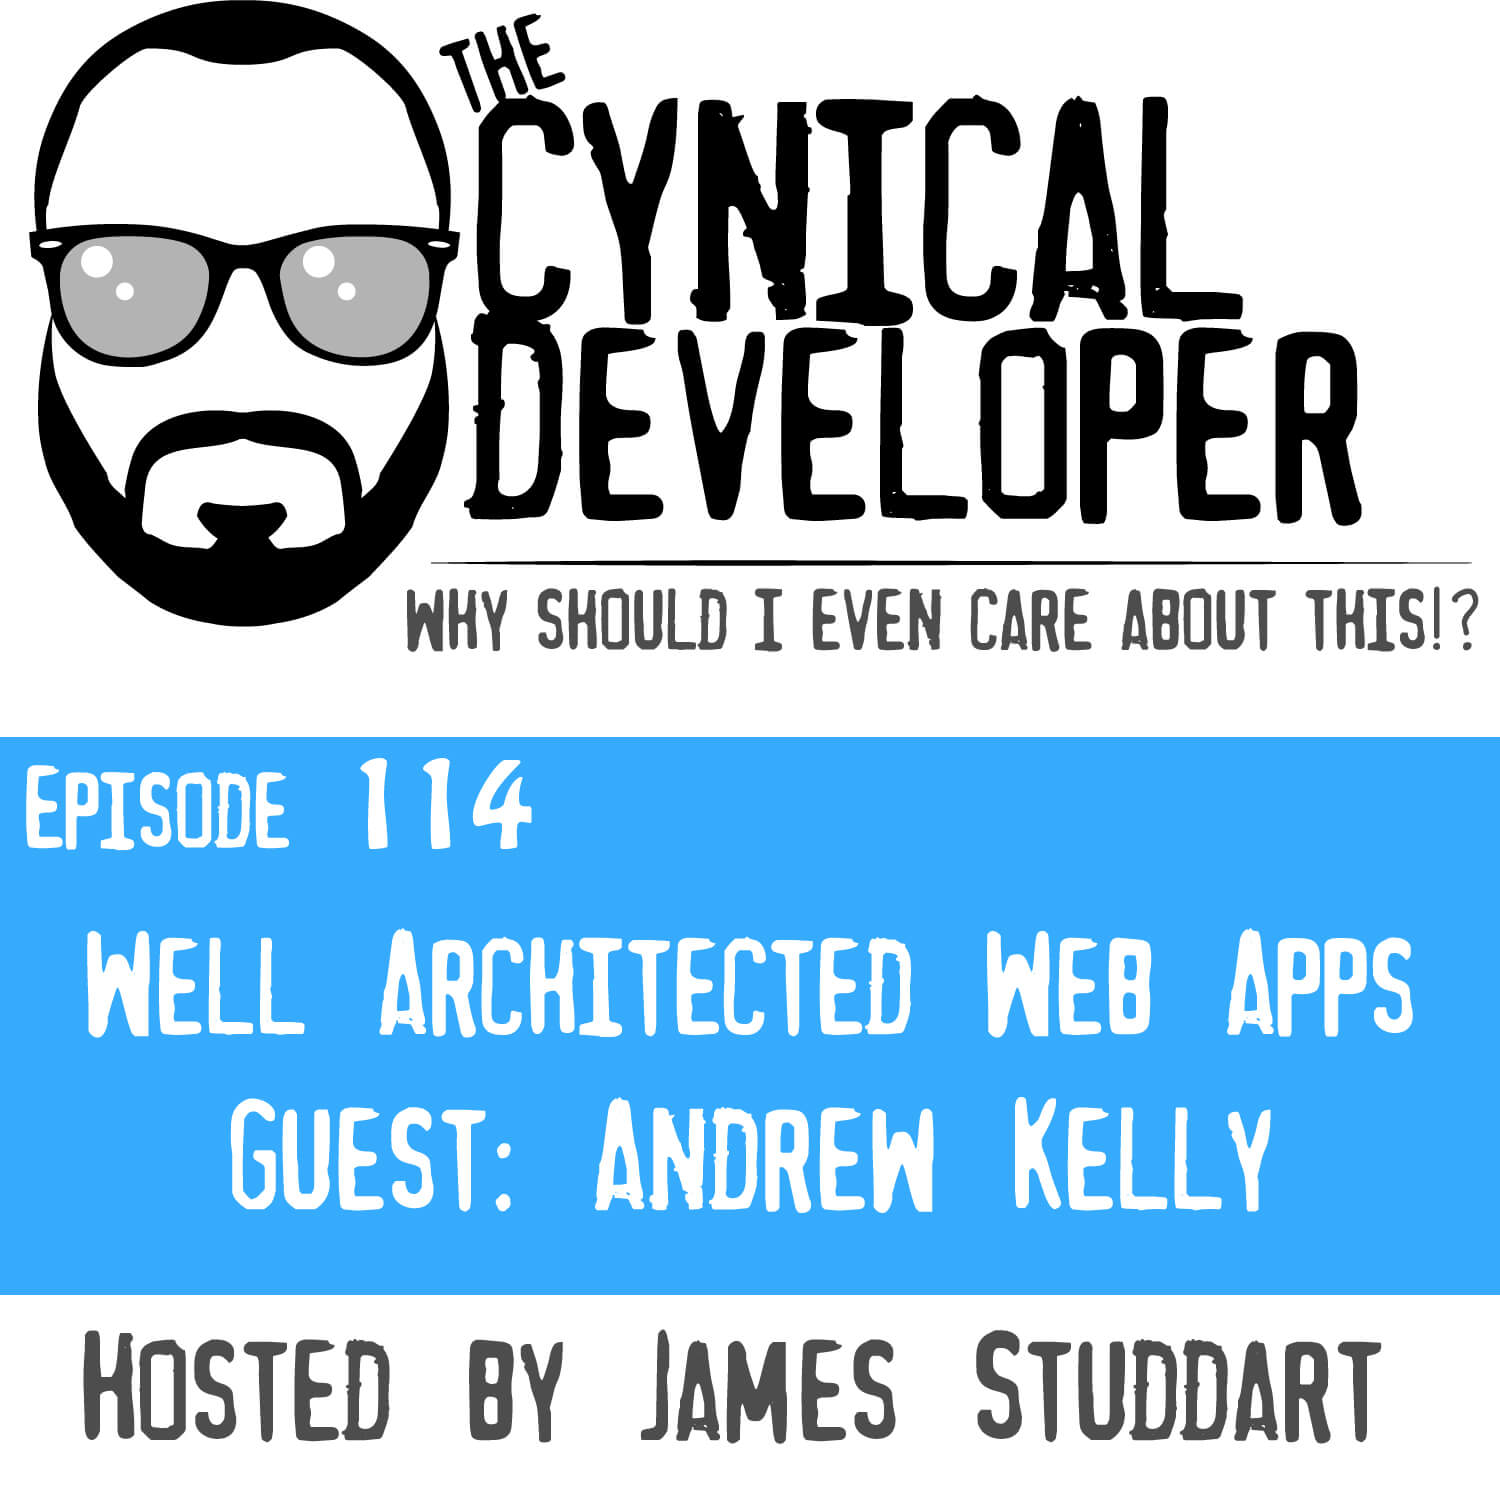 Episode 114 - Well-Architected Web Applications